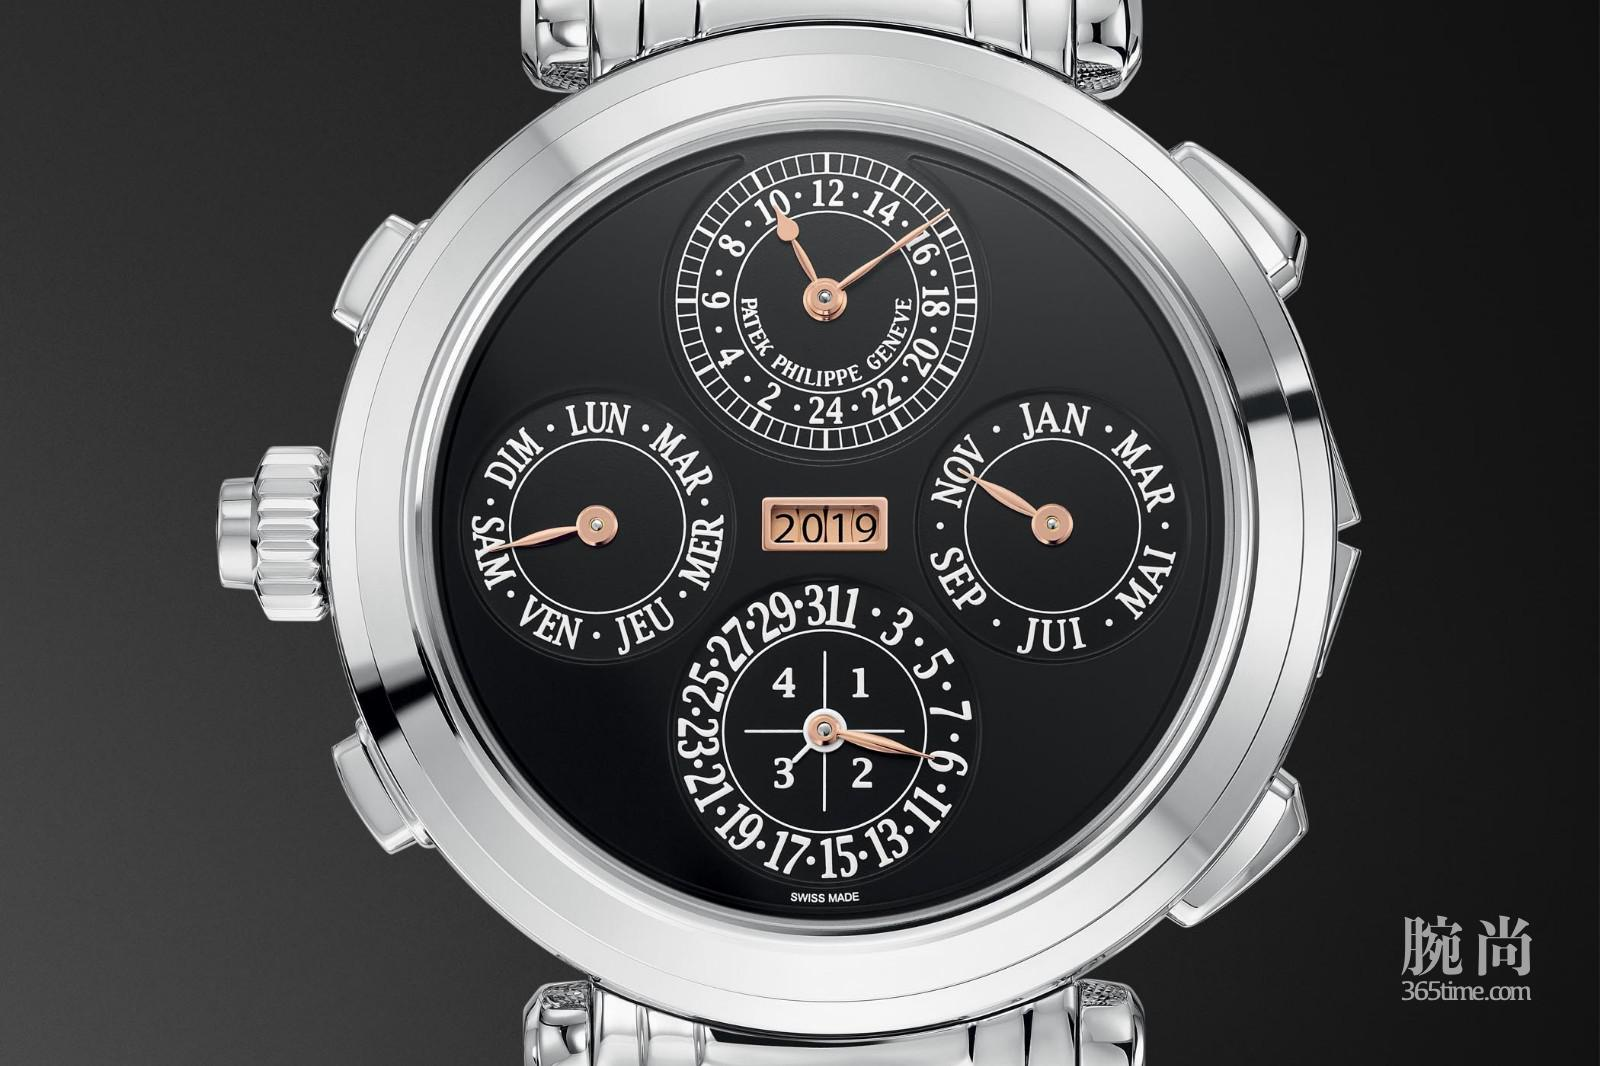 Only-Watch-2019-Patek-Philippe-6300A-Steel-grandmaster-chime-3.jpg